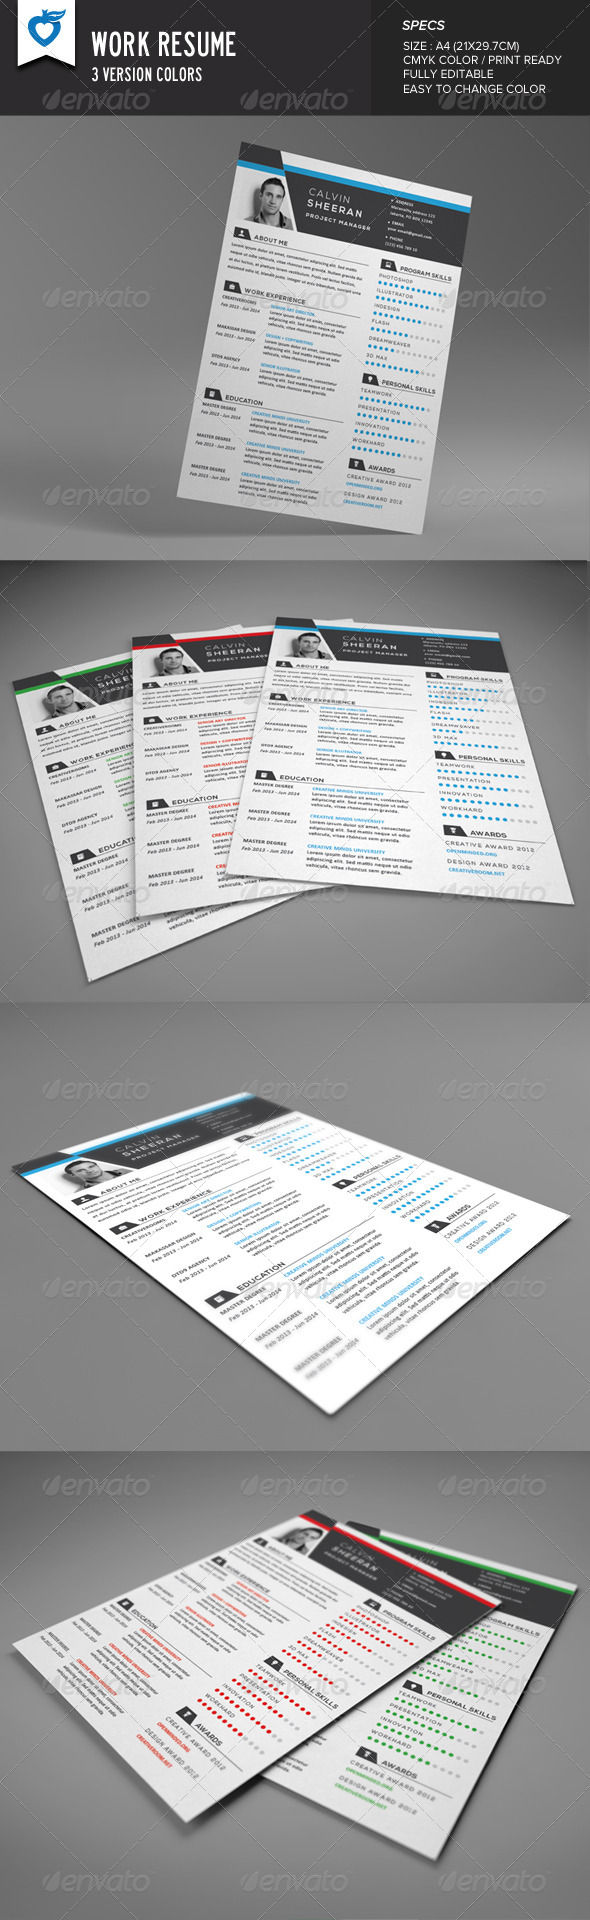 GraphicRiver Work Resume 8329860